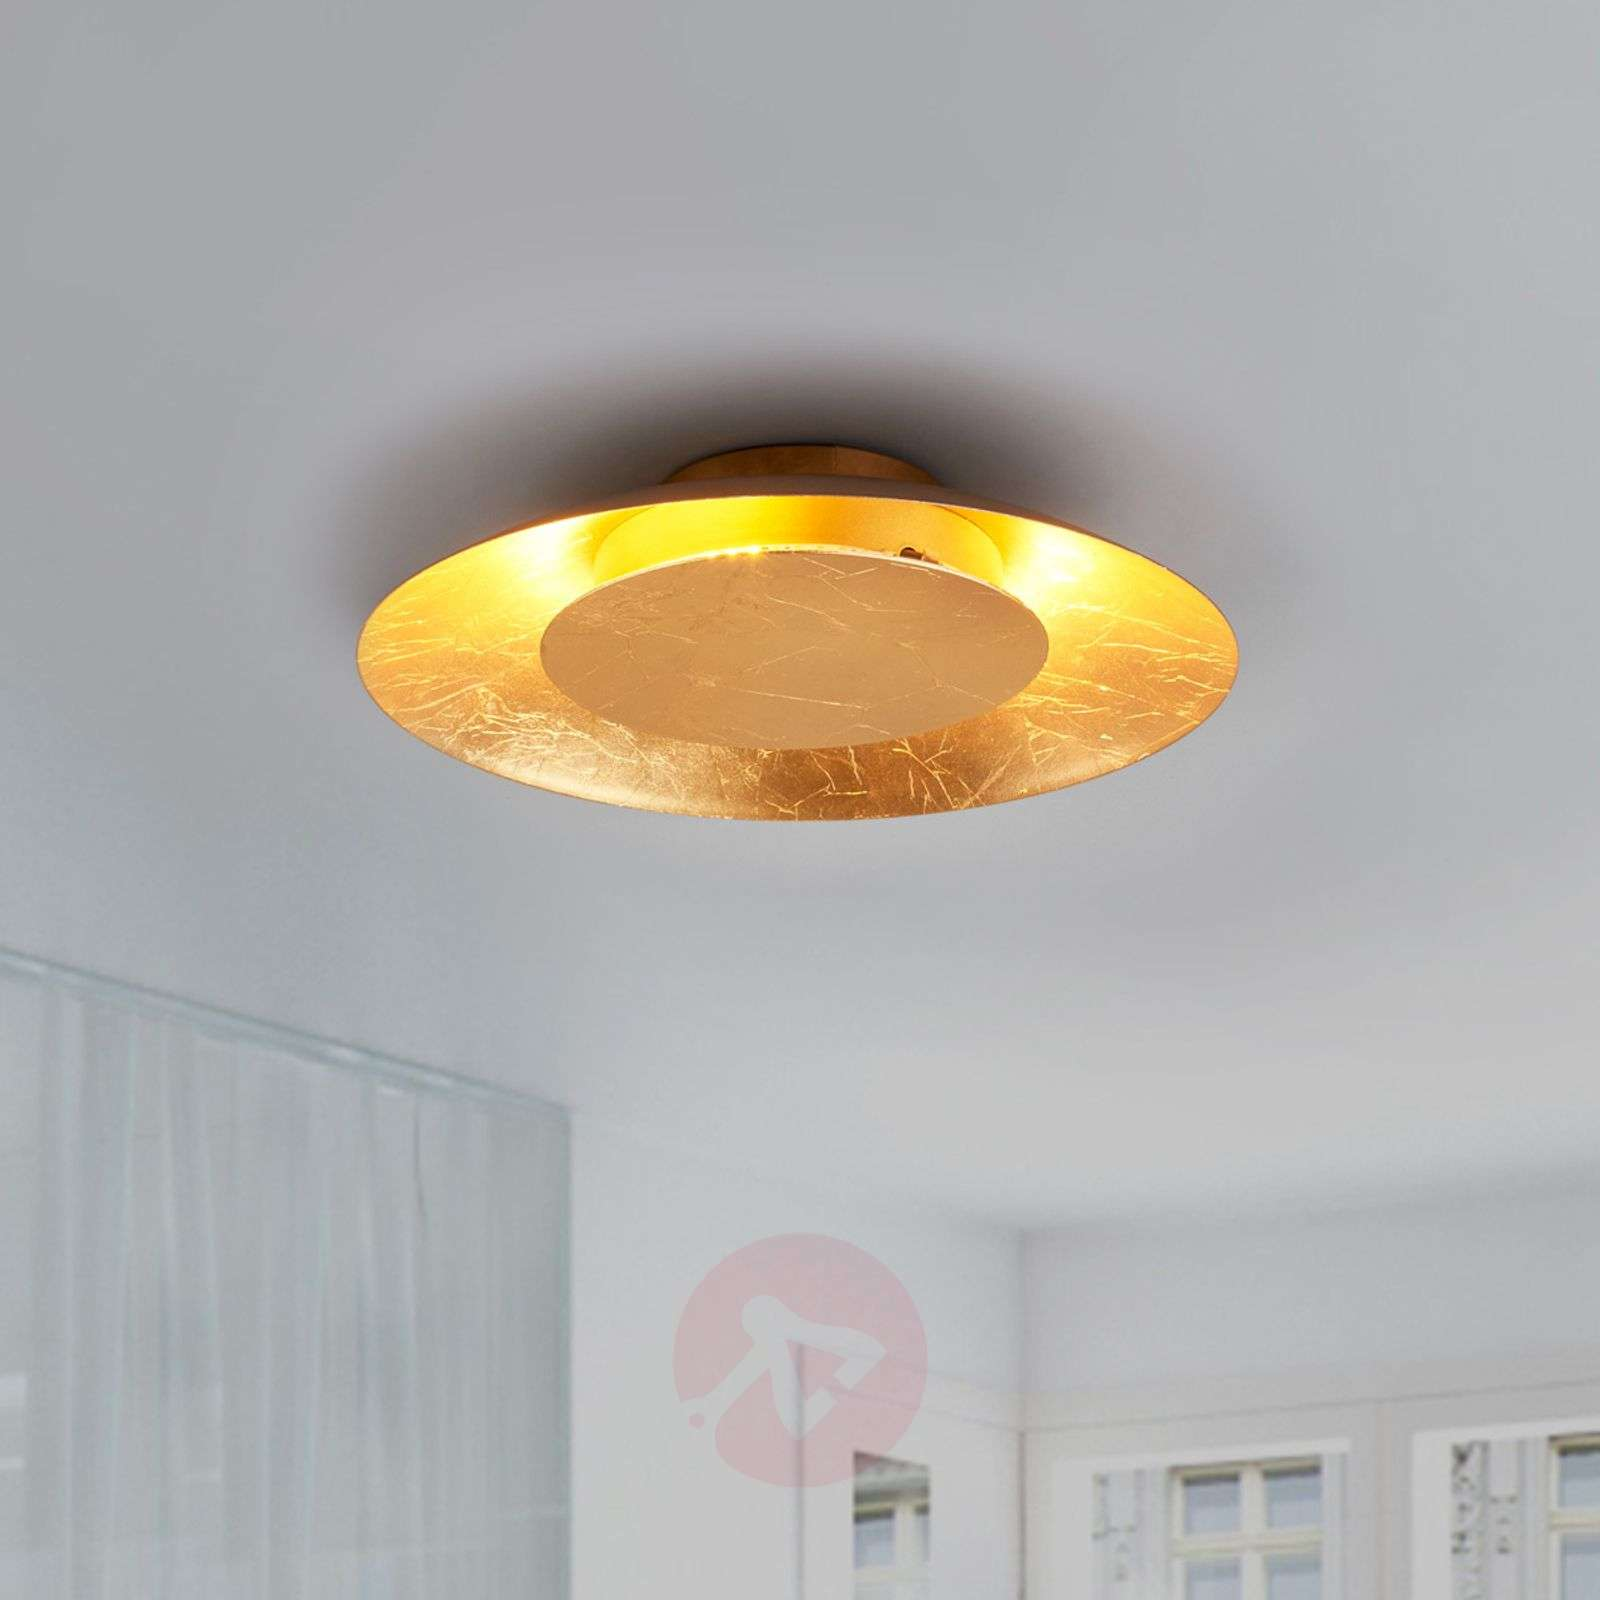 Gold coloured led ceiling light keti lights gold coloured led ceiling light keti 9625046 01 aloadofball Image collections